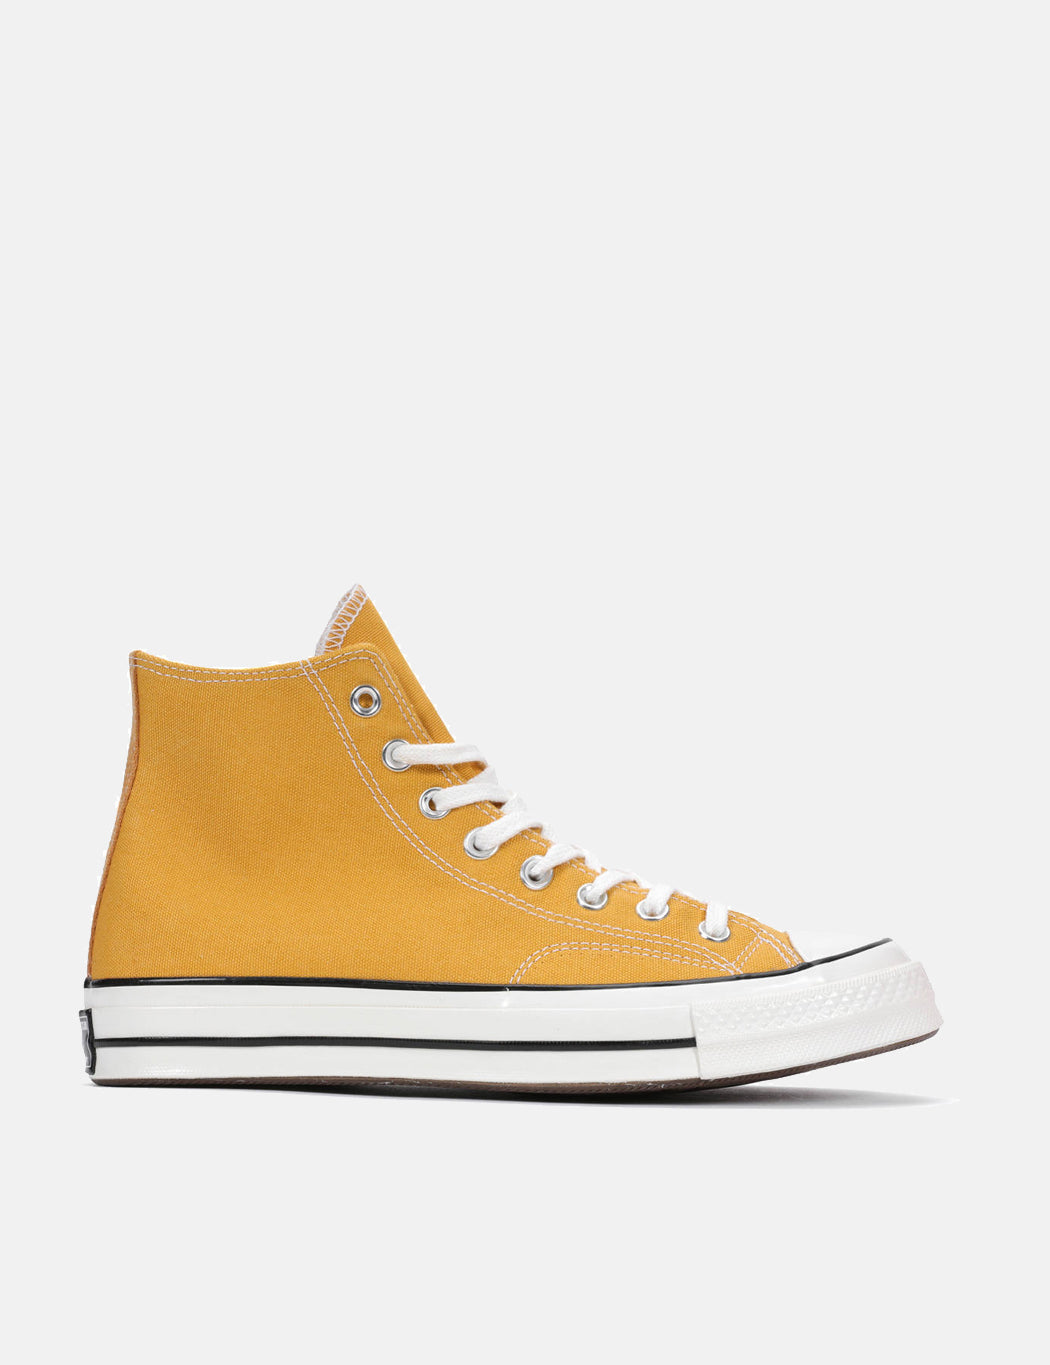 ee55bdaca34ed5 Converse 70 s Chuck Hi 162054C (Canvas) in Sunflower Yellow Black Egret